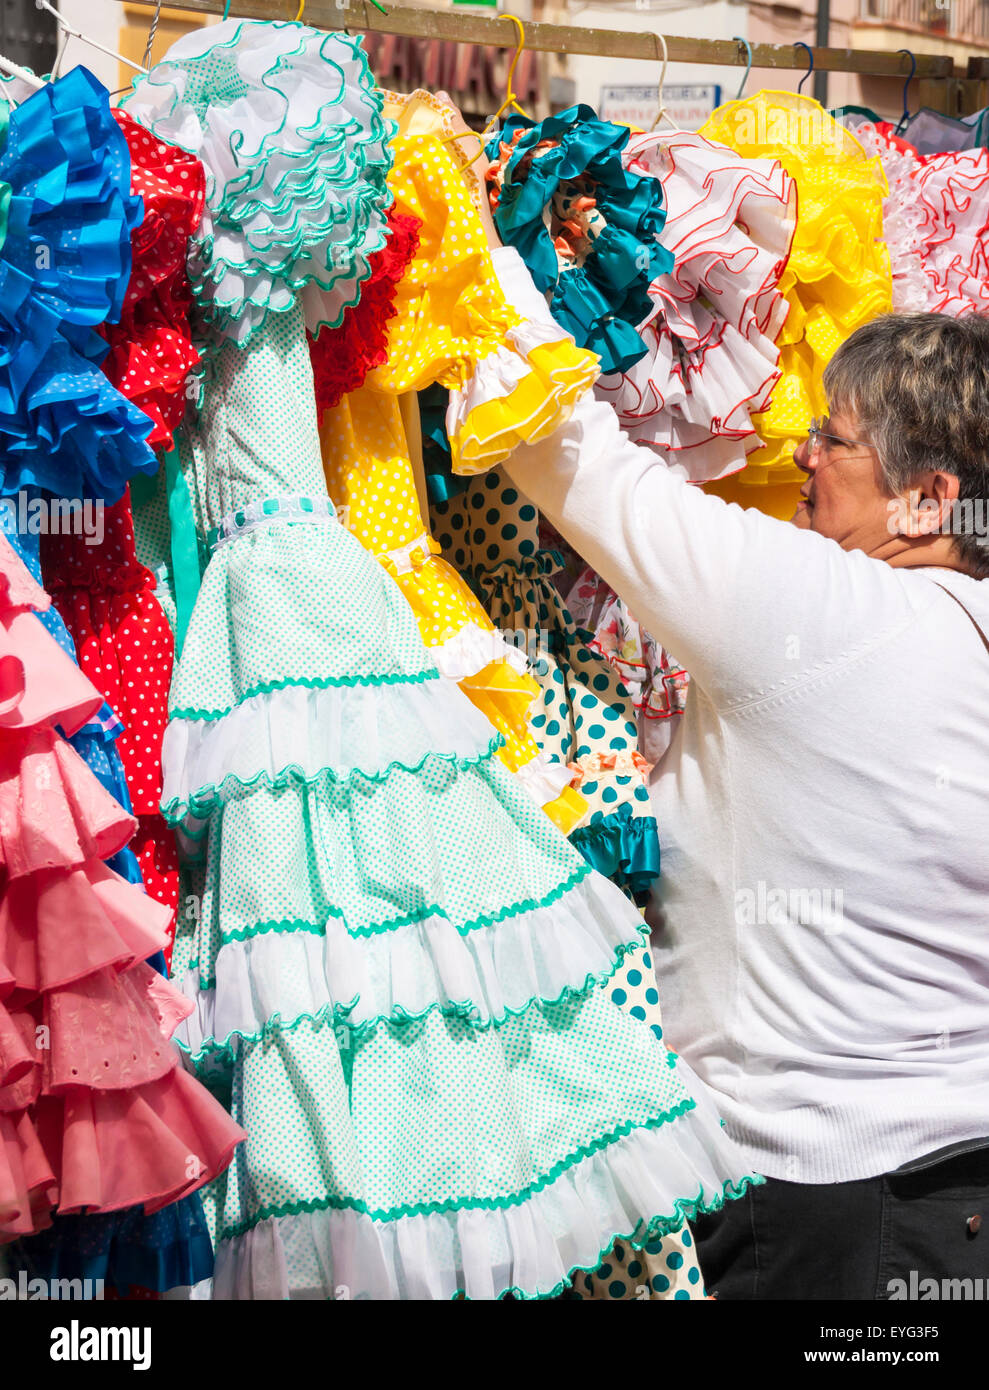 0755ee8fdc01a Secondhand Flamenco dresses on famous street Flea market in Calle Feria in  Seville, Spain -